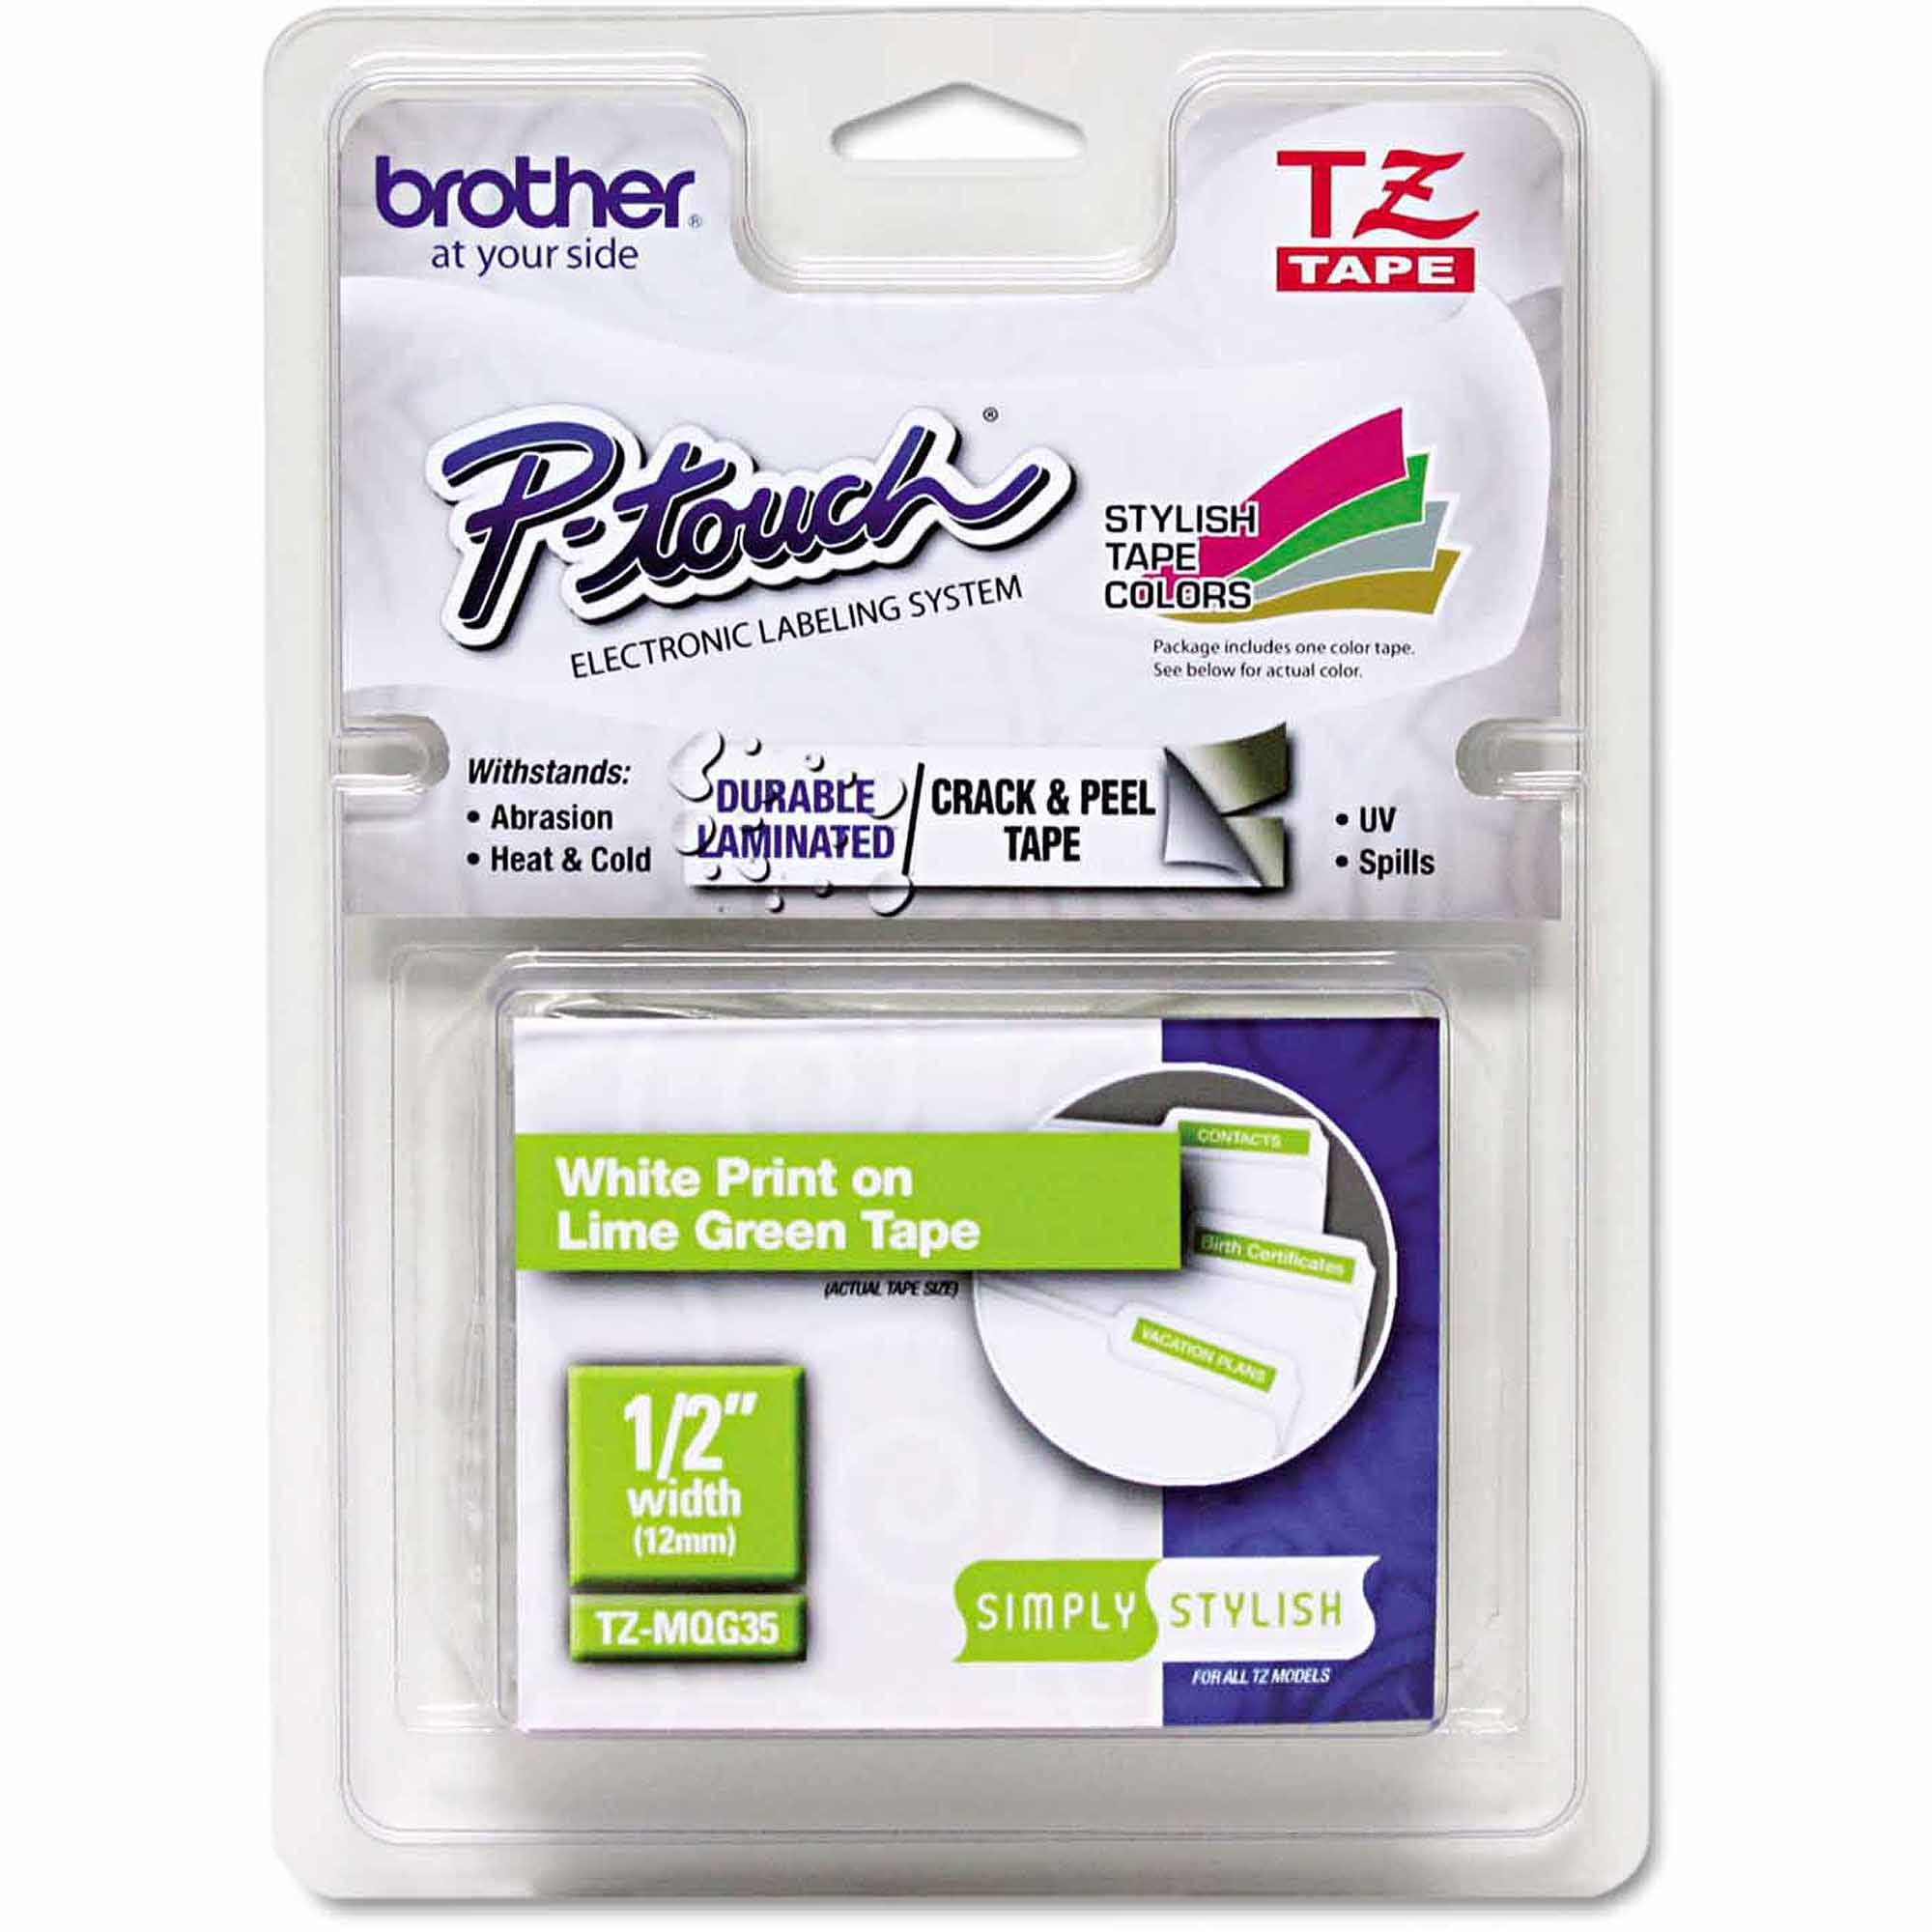 "Brother P-Touch TZ Standard Adhesive Laminated Labeling Tape, 1/2"" x 16.4', White/Lime Green"